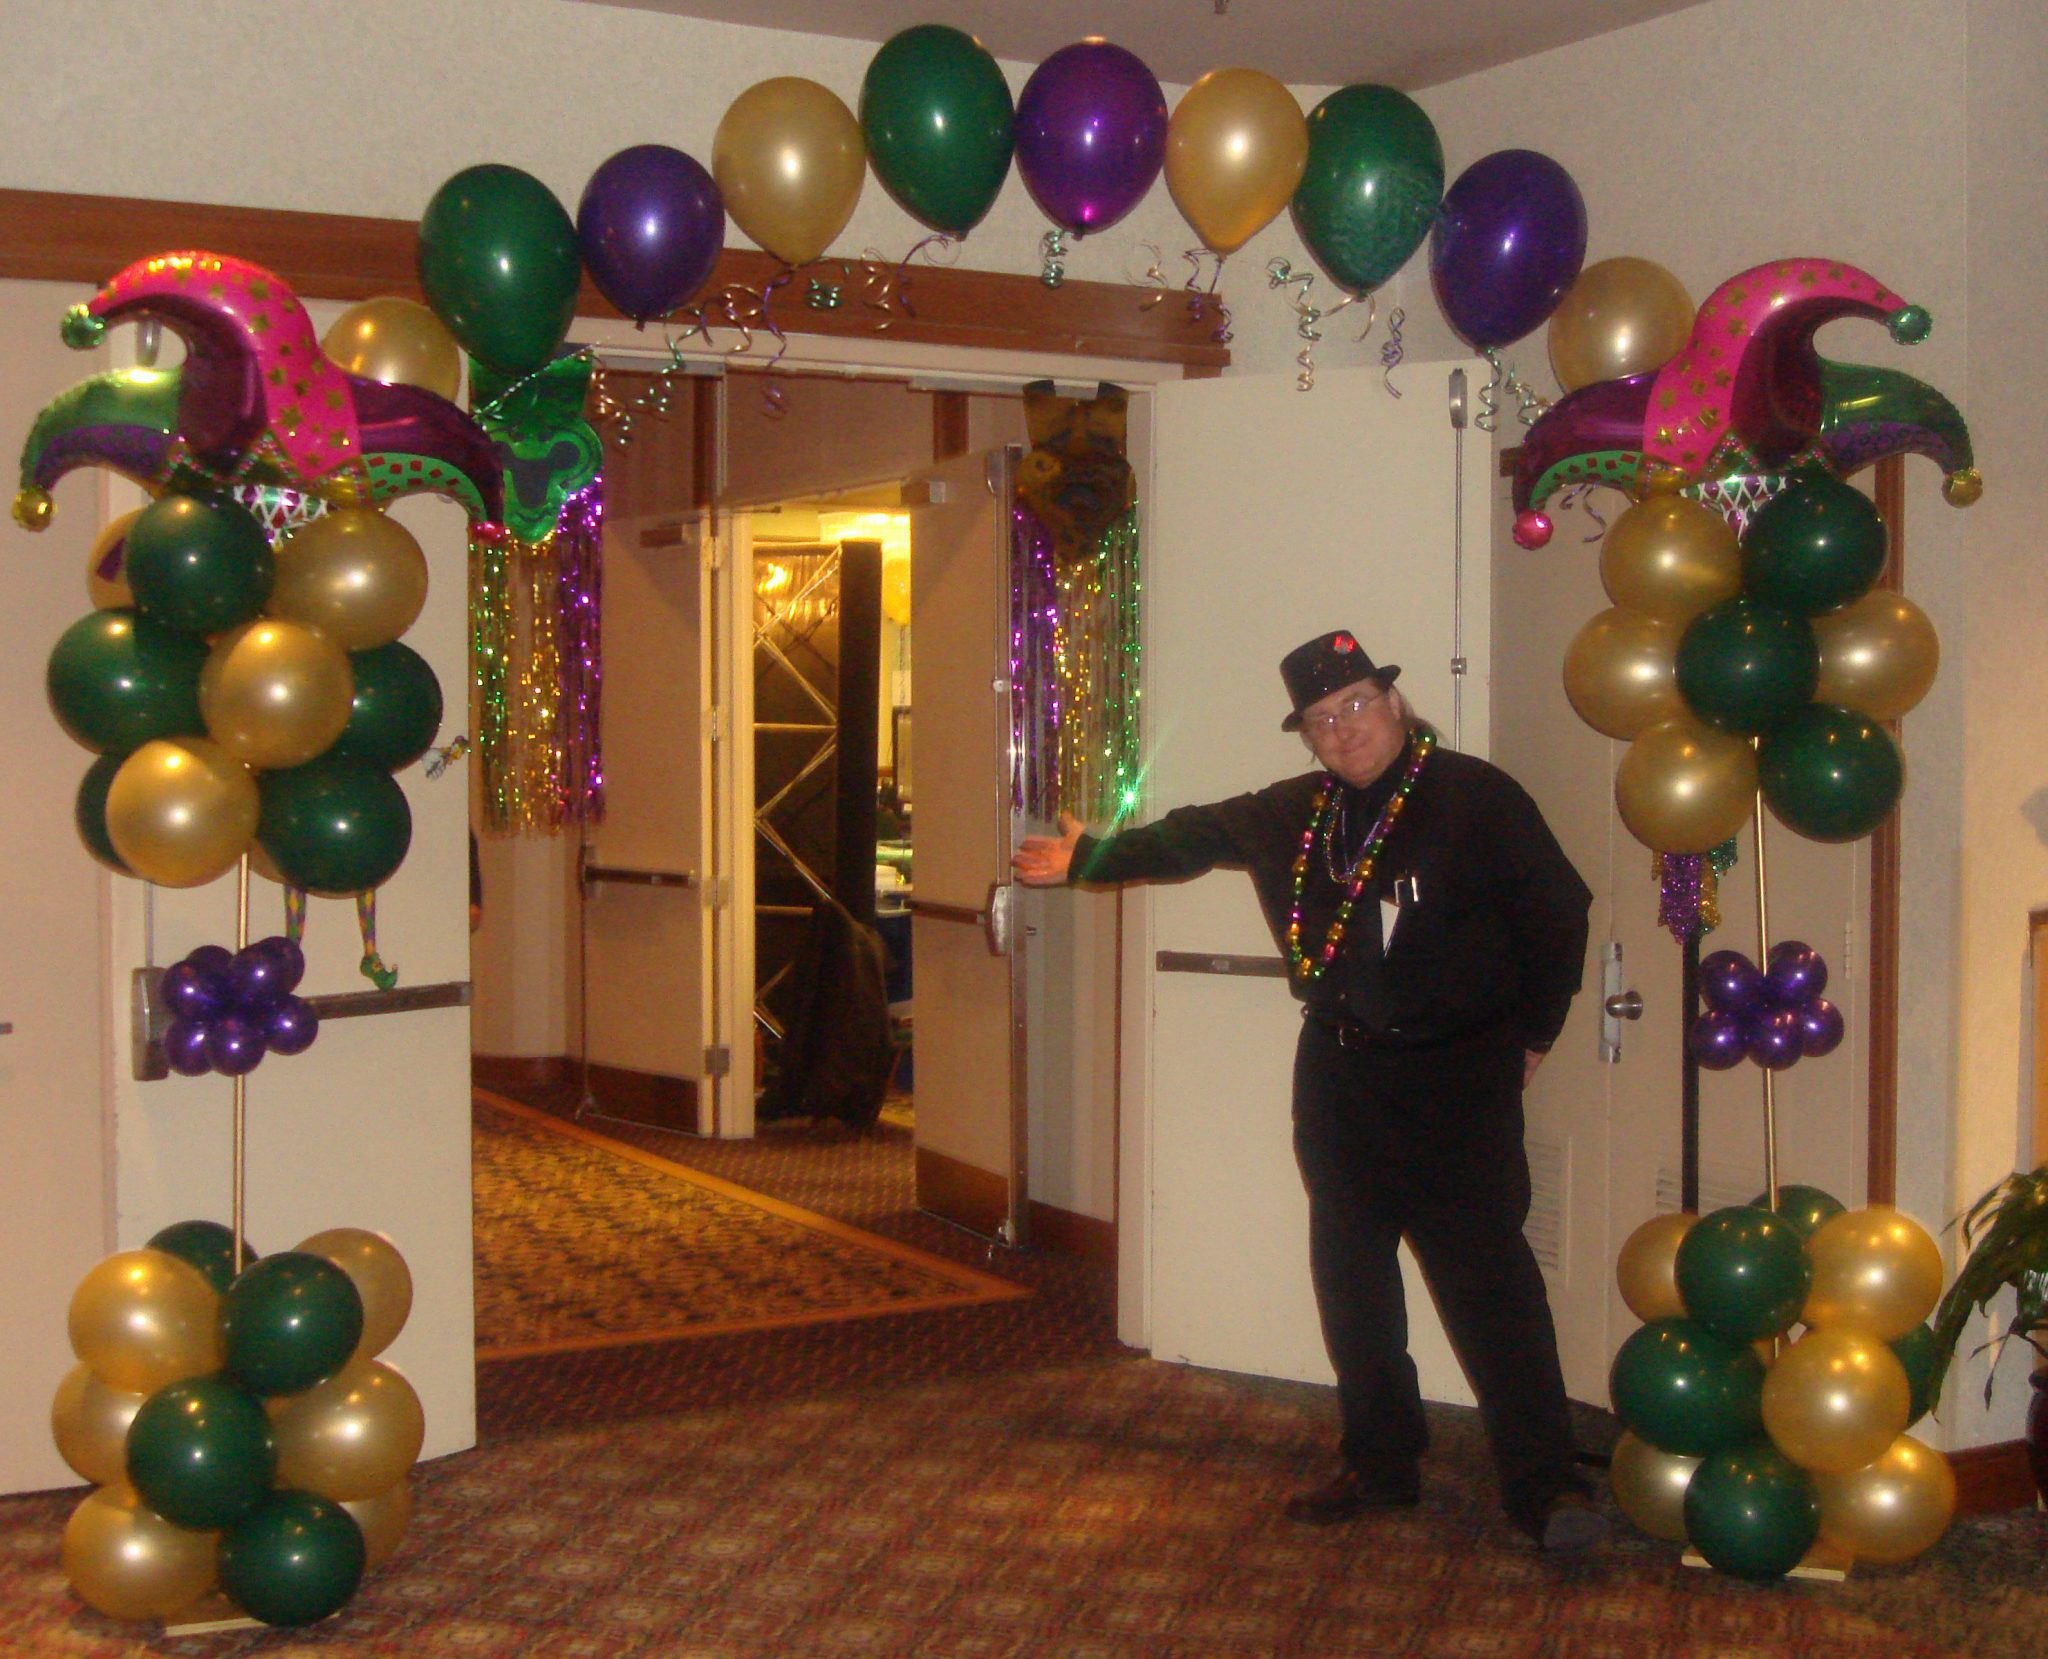 12 Best Mardi Gras Balloons & Decor images | Mardi gras ...